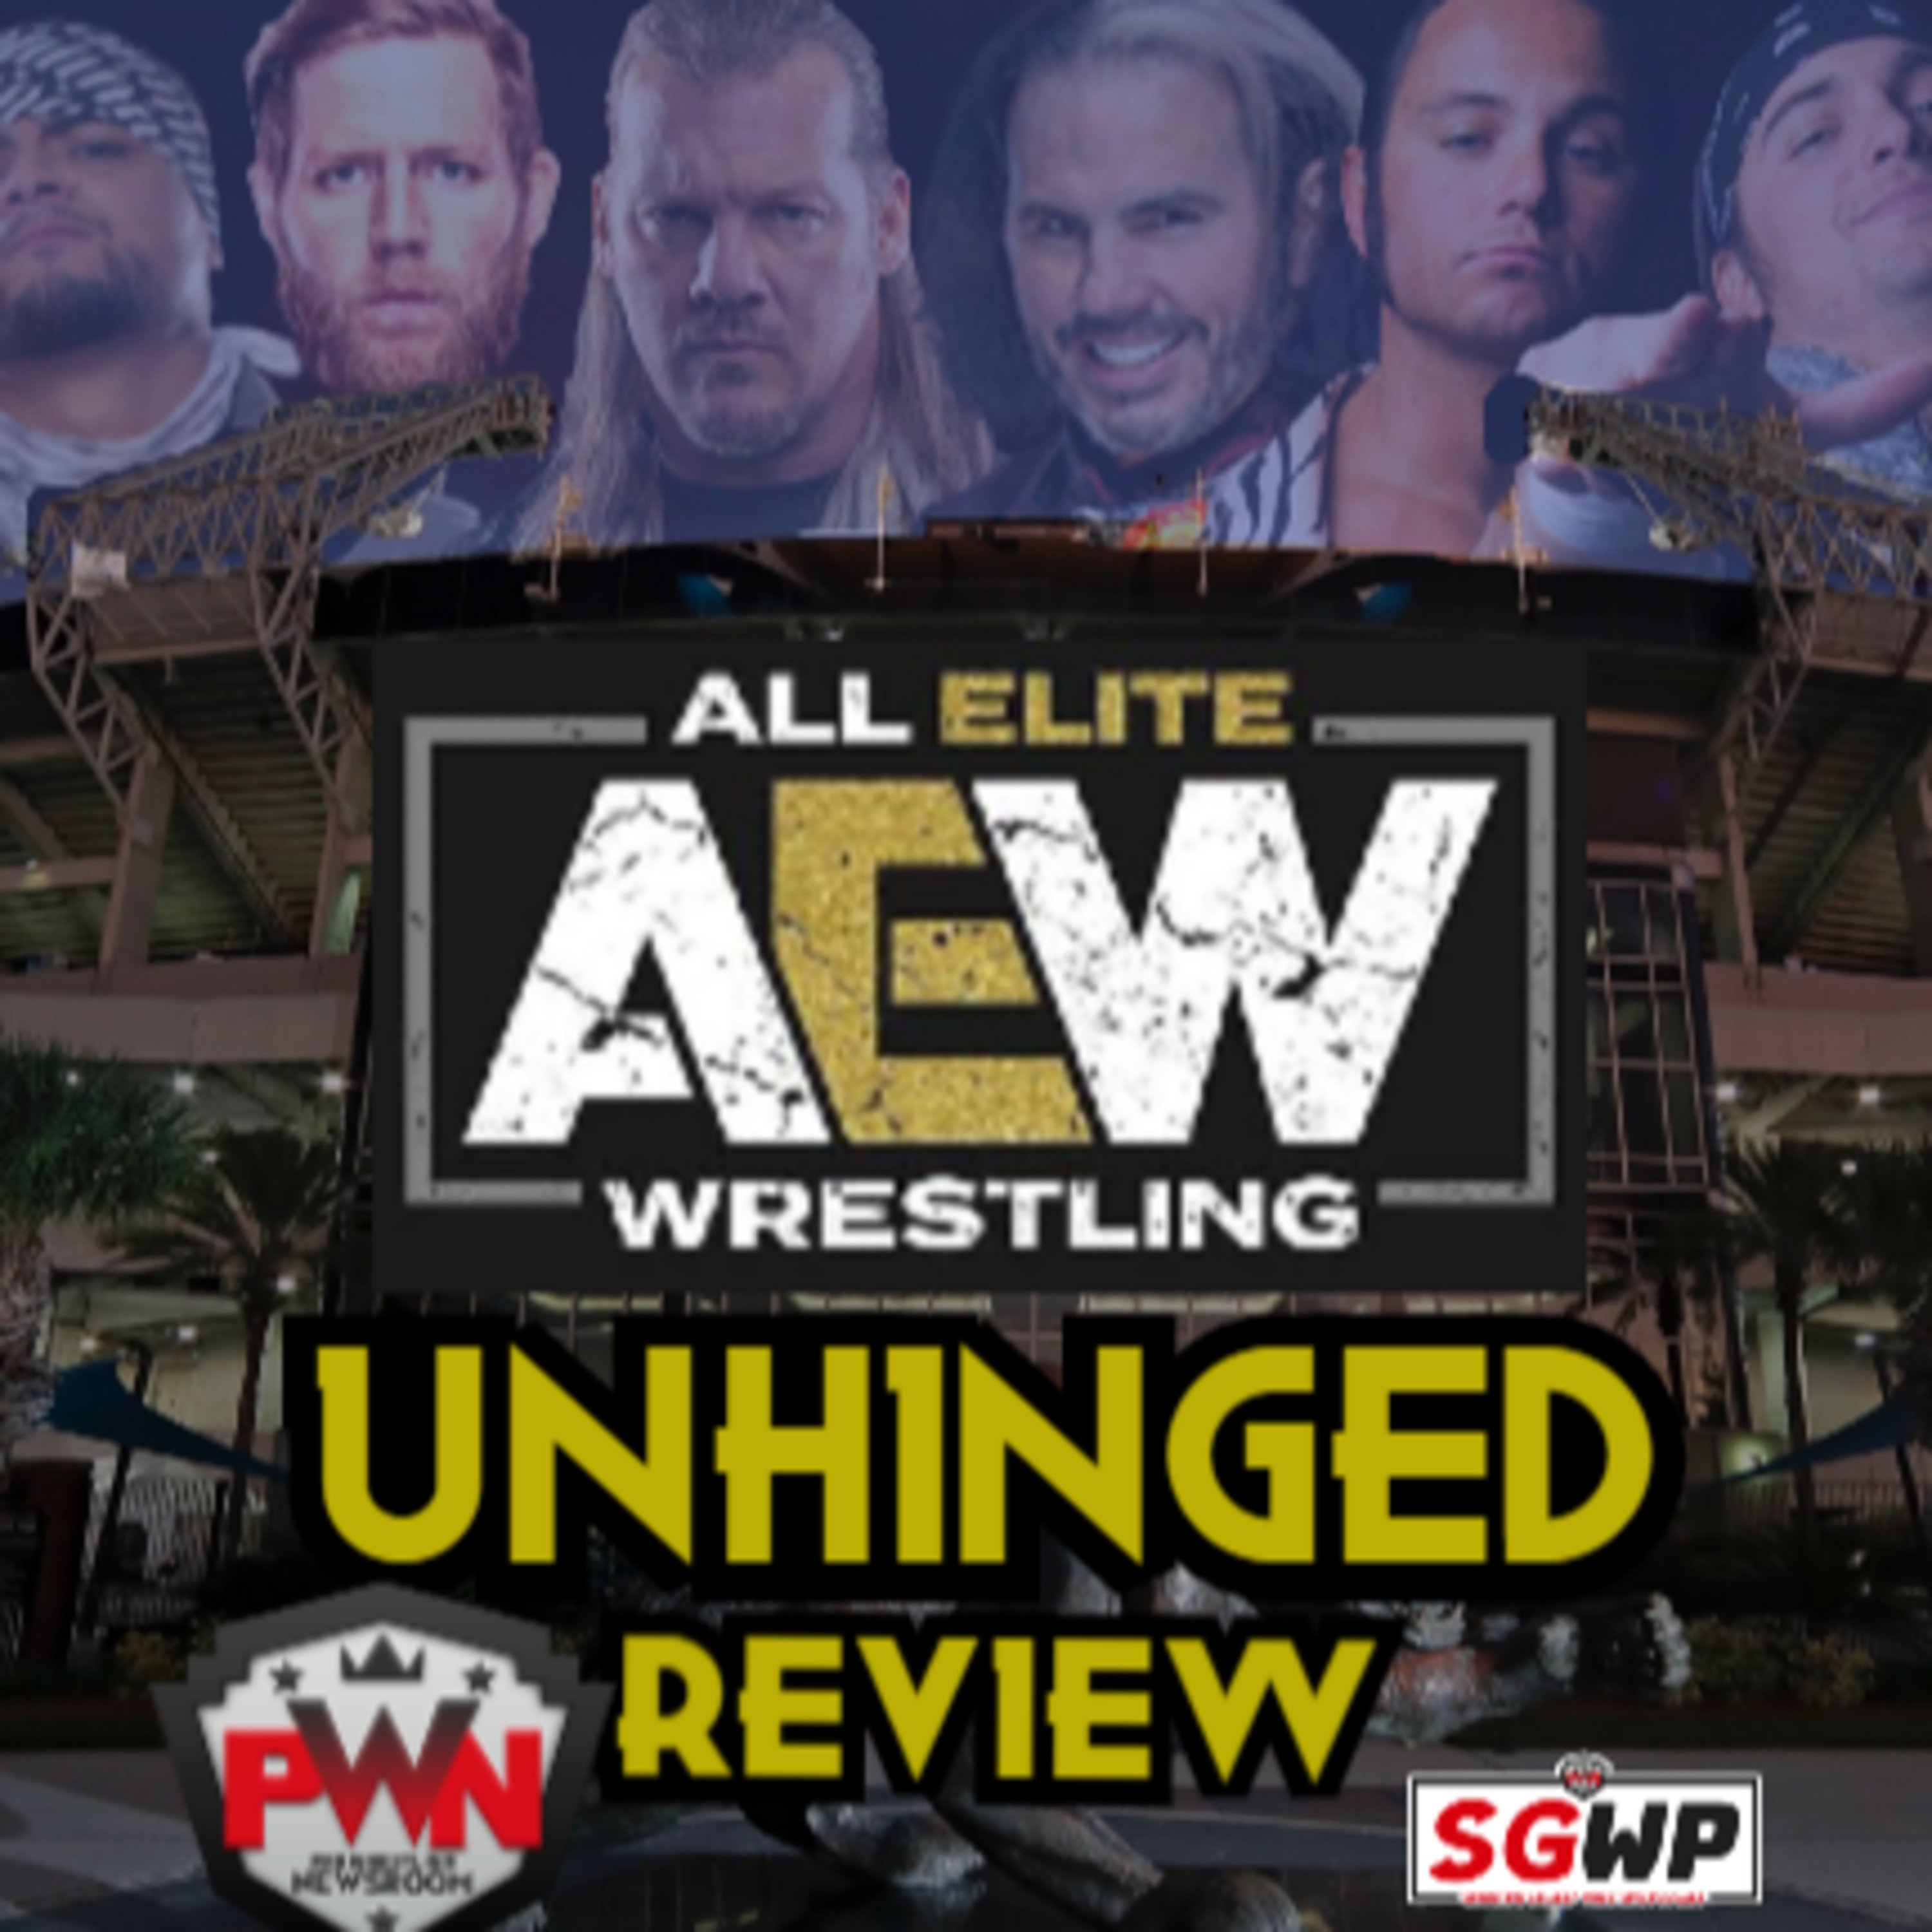 AEW : Unhinged Review Ep. 2